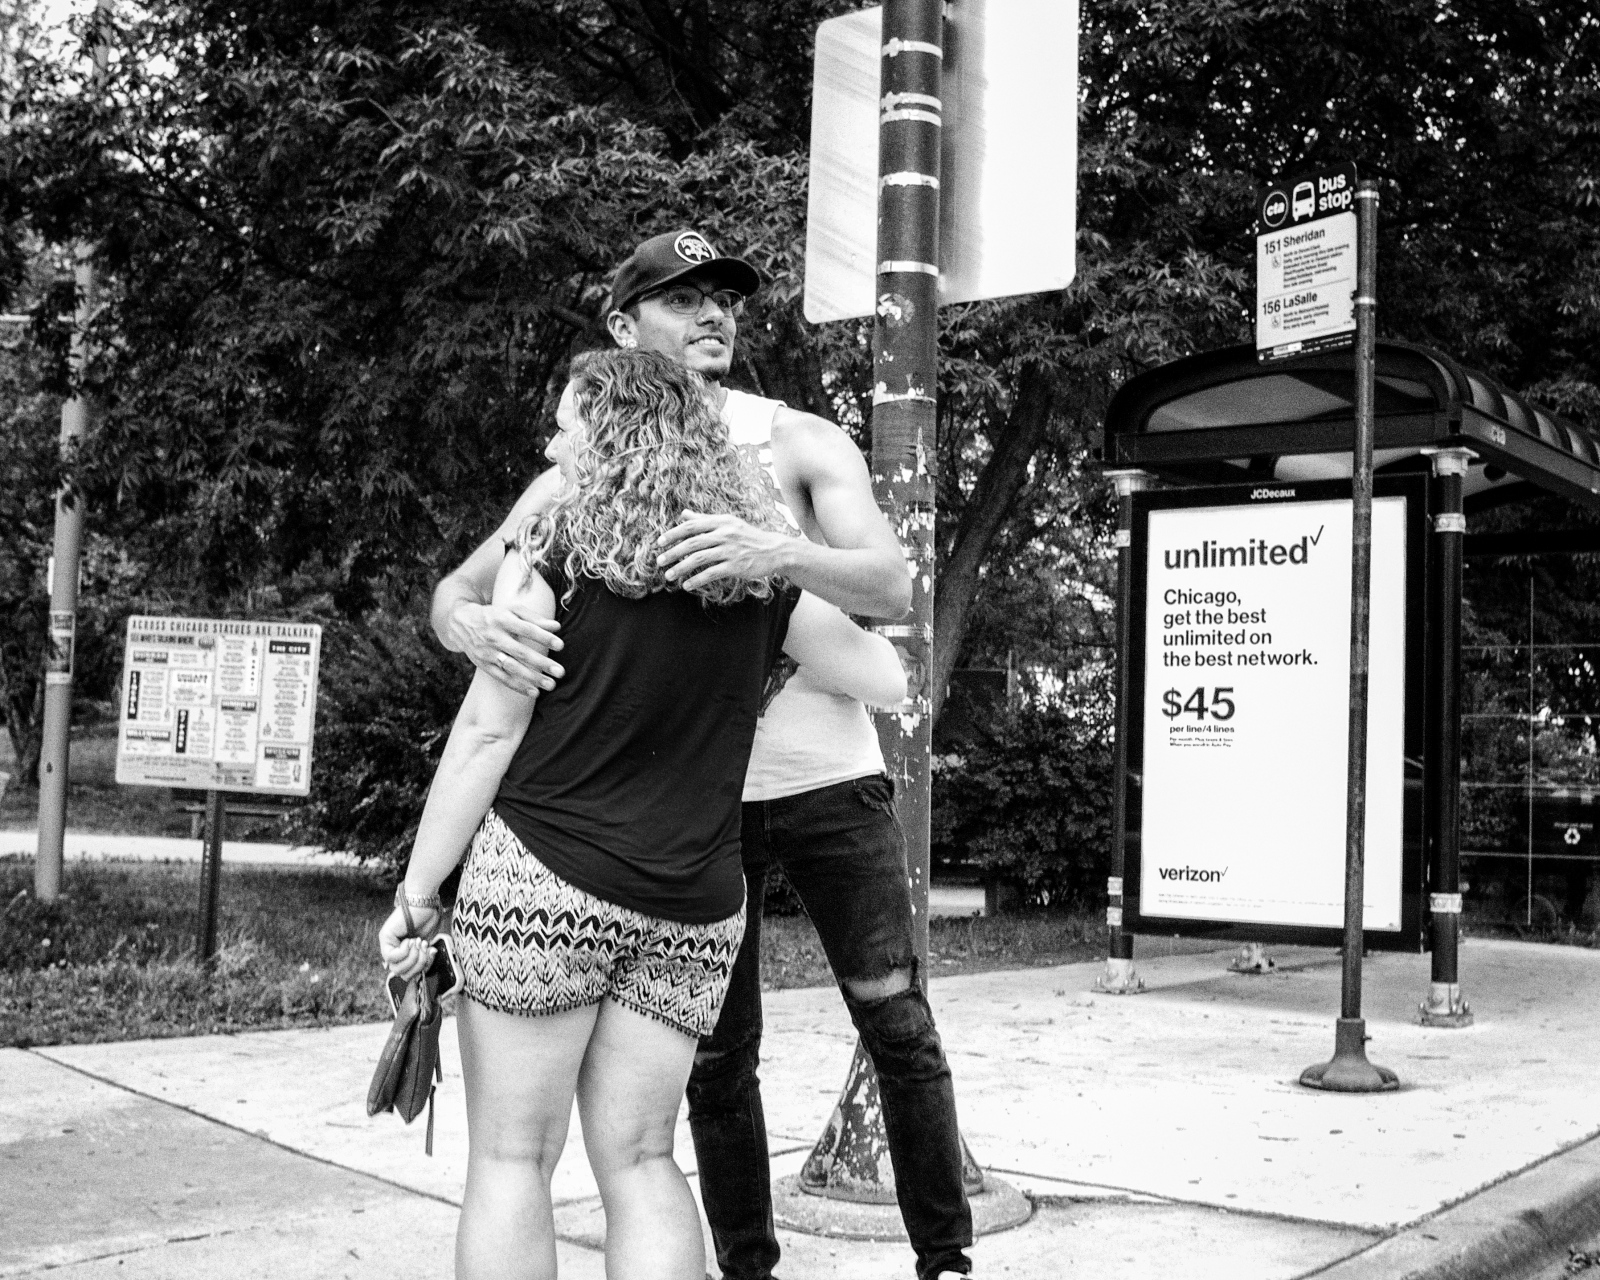 Couple at Stockton and Fullerton, Chicago 2017